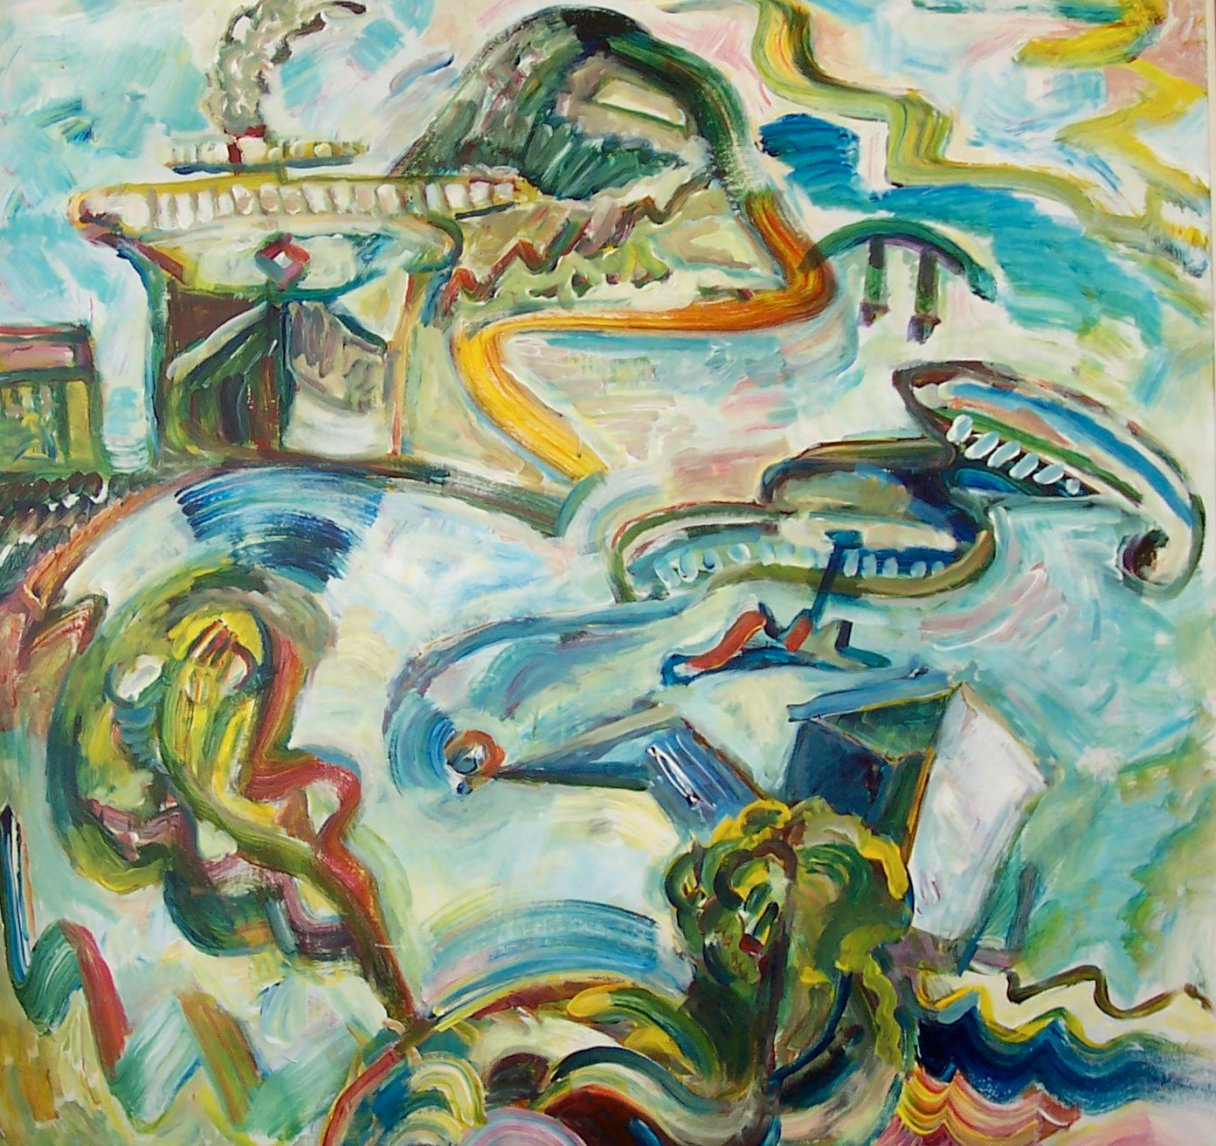 Angry Day At Estes Head, 2002, Diana Young, American b. 1936,40 x 40 in, acrylic on canvas, $3200 - Another stunning example of Young's ability to distill the character of a landscape.